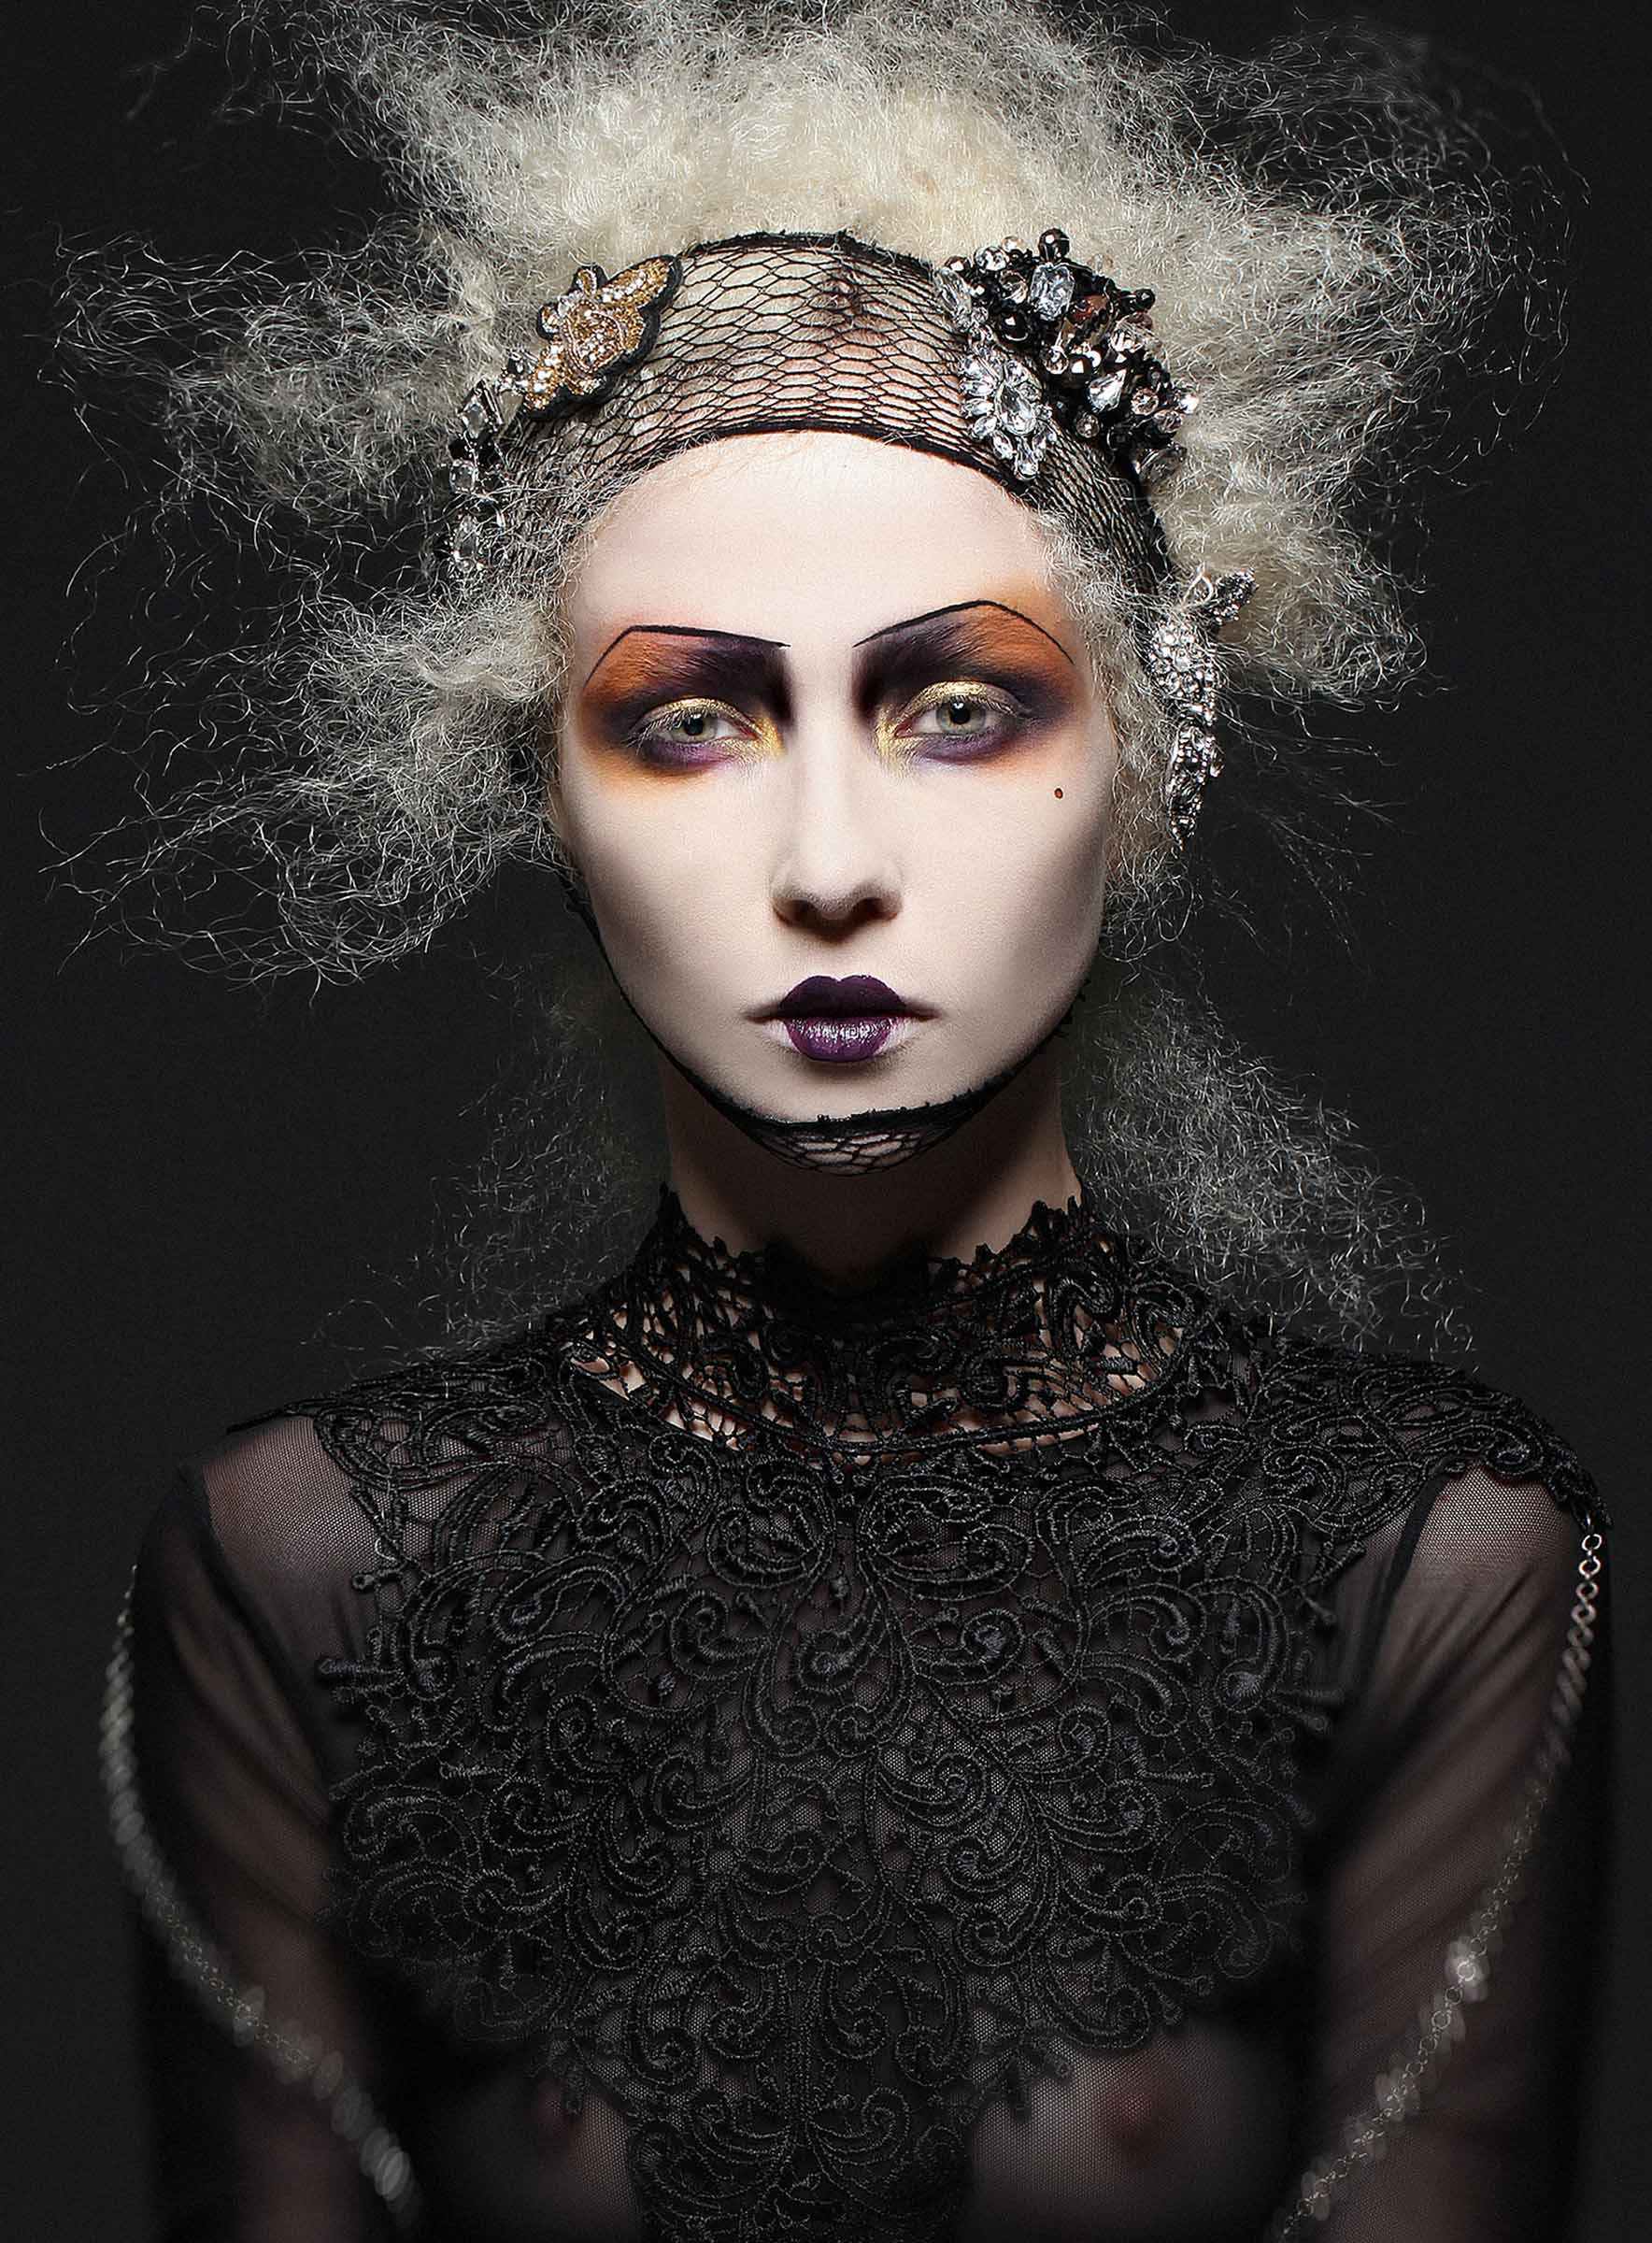 naha-2019-winner-julie-vriesinga-texture-paula-tizzard-hair-fashion-mua-photographers-toronto-london-ontario